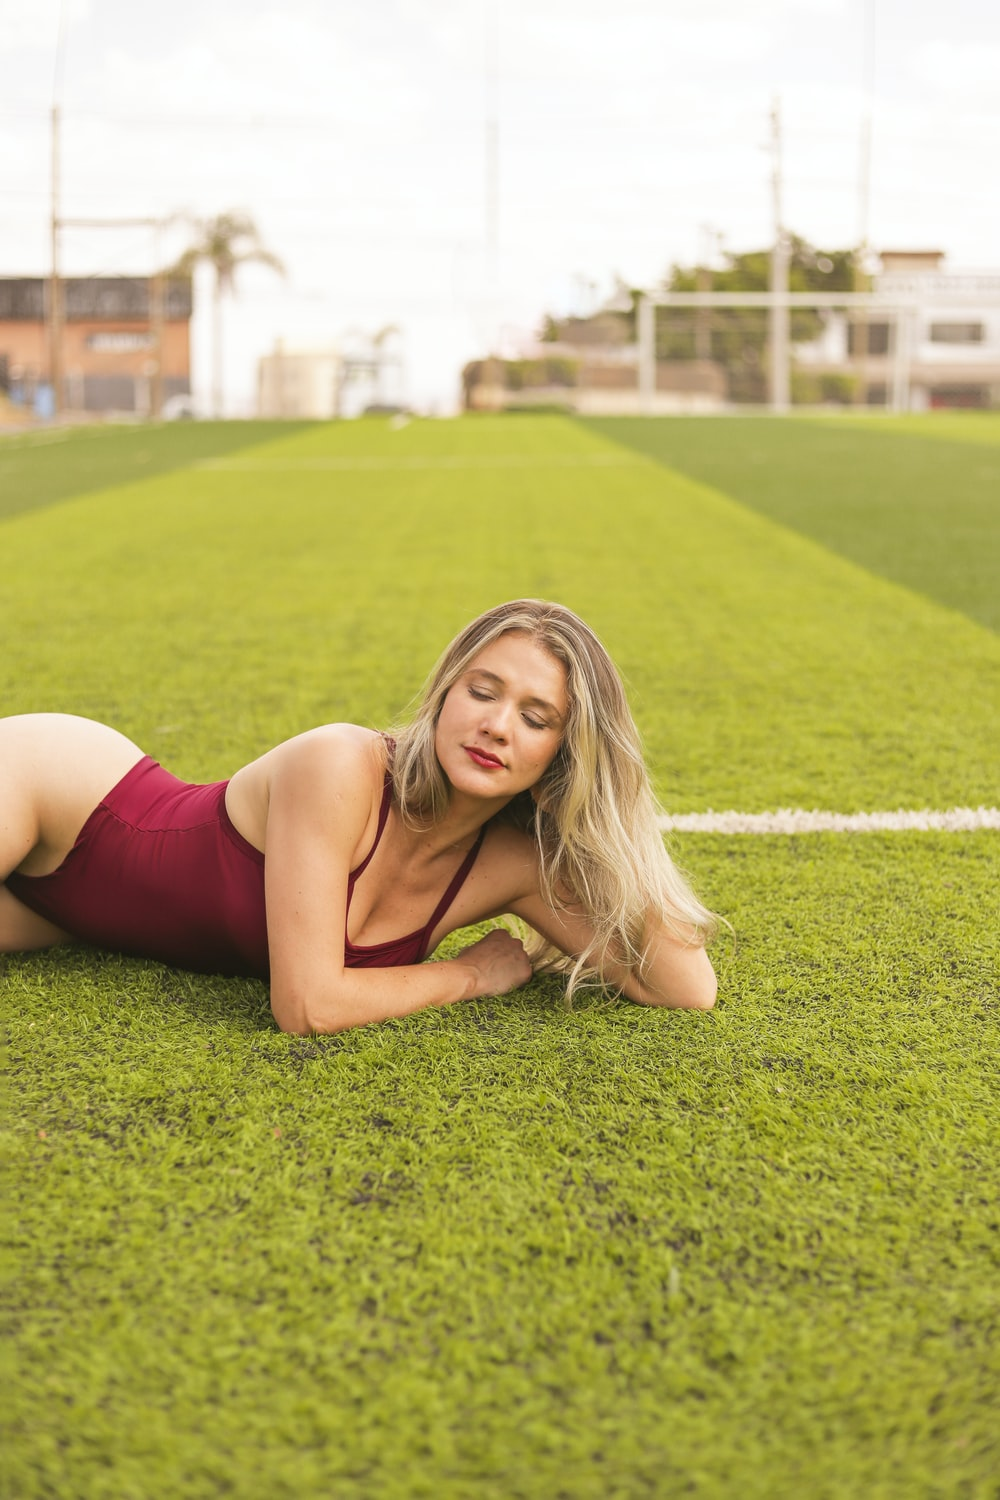 woman in red tank top lying on green grass field during daytime